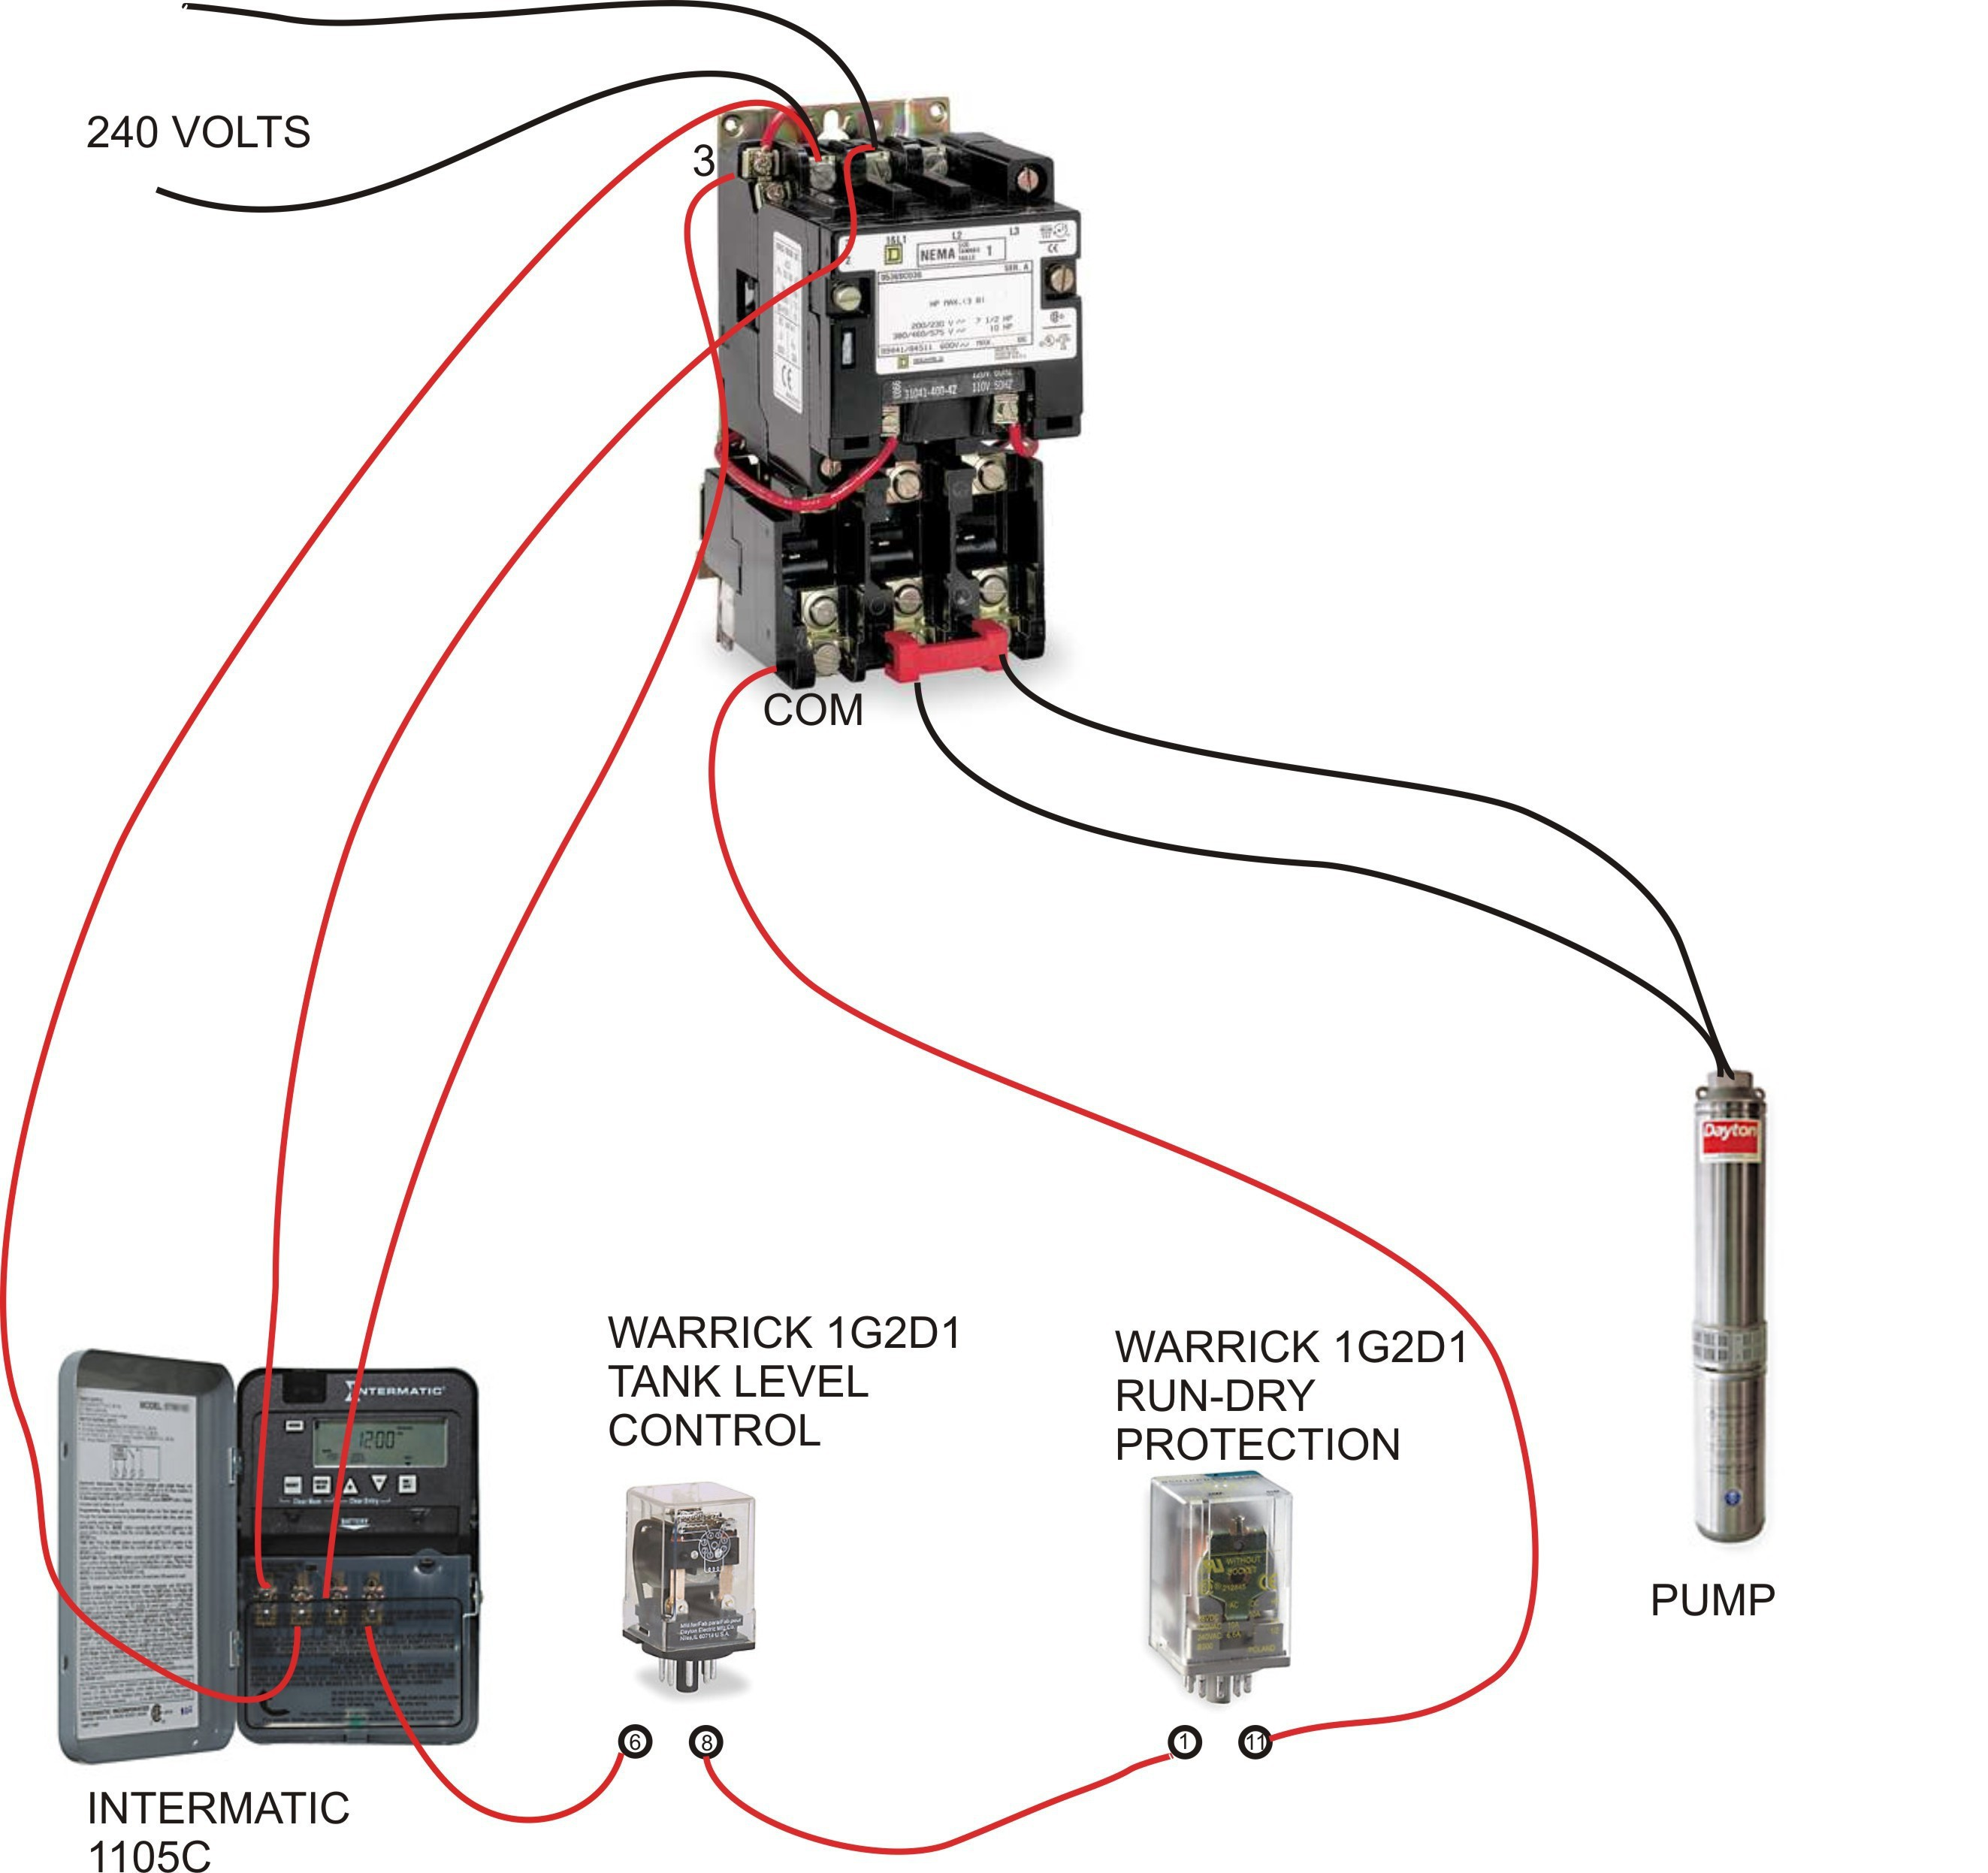 CL_3723] Square D Pressure Switch Wiring Free Diagram